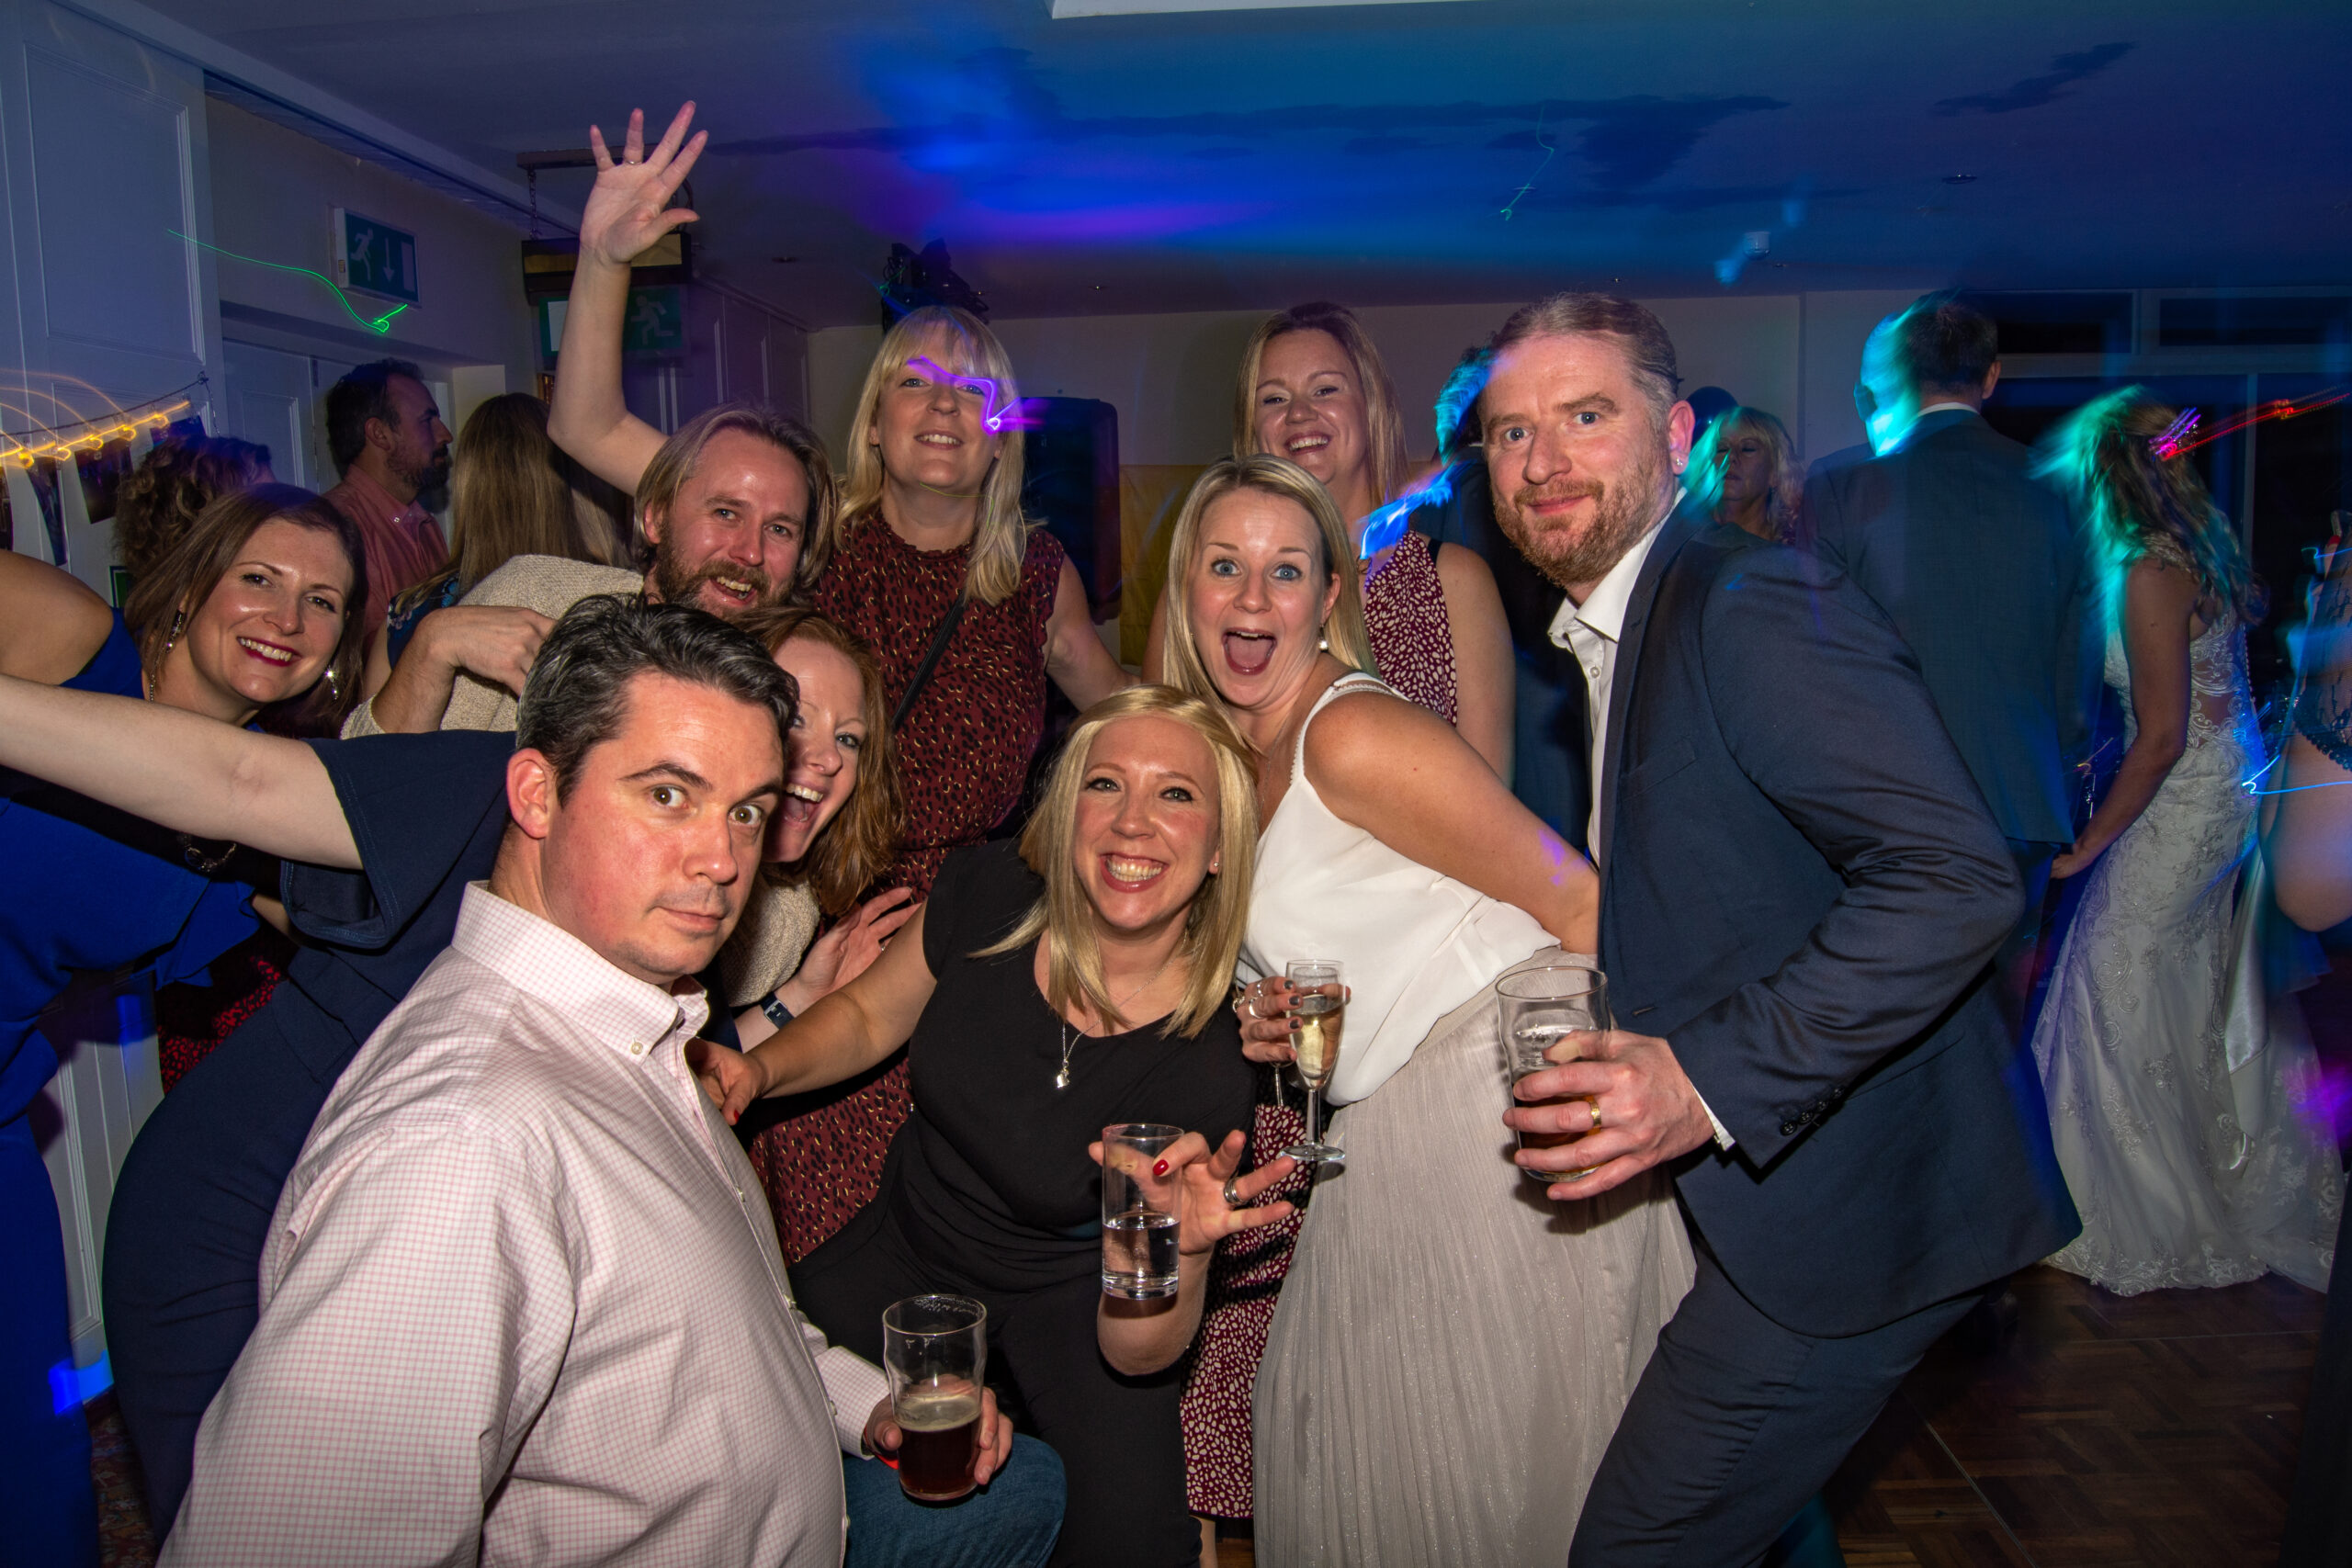 Party at Shillingford Bridge Hotel Oxfordshire